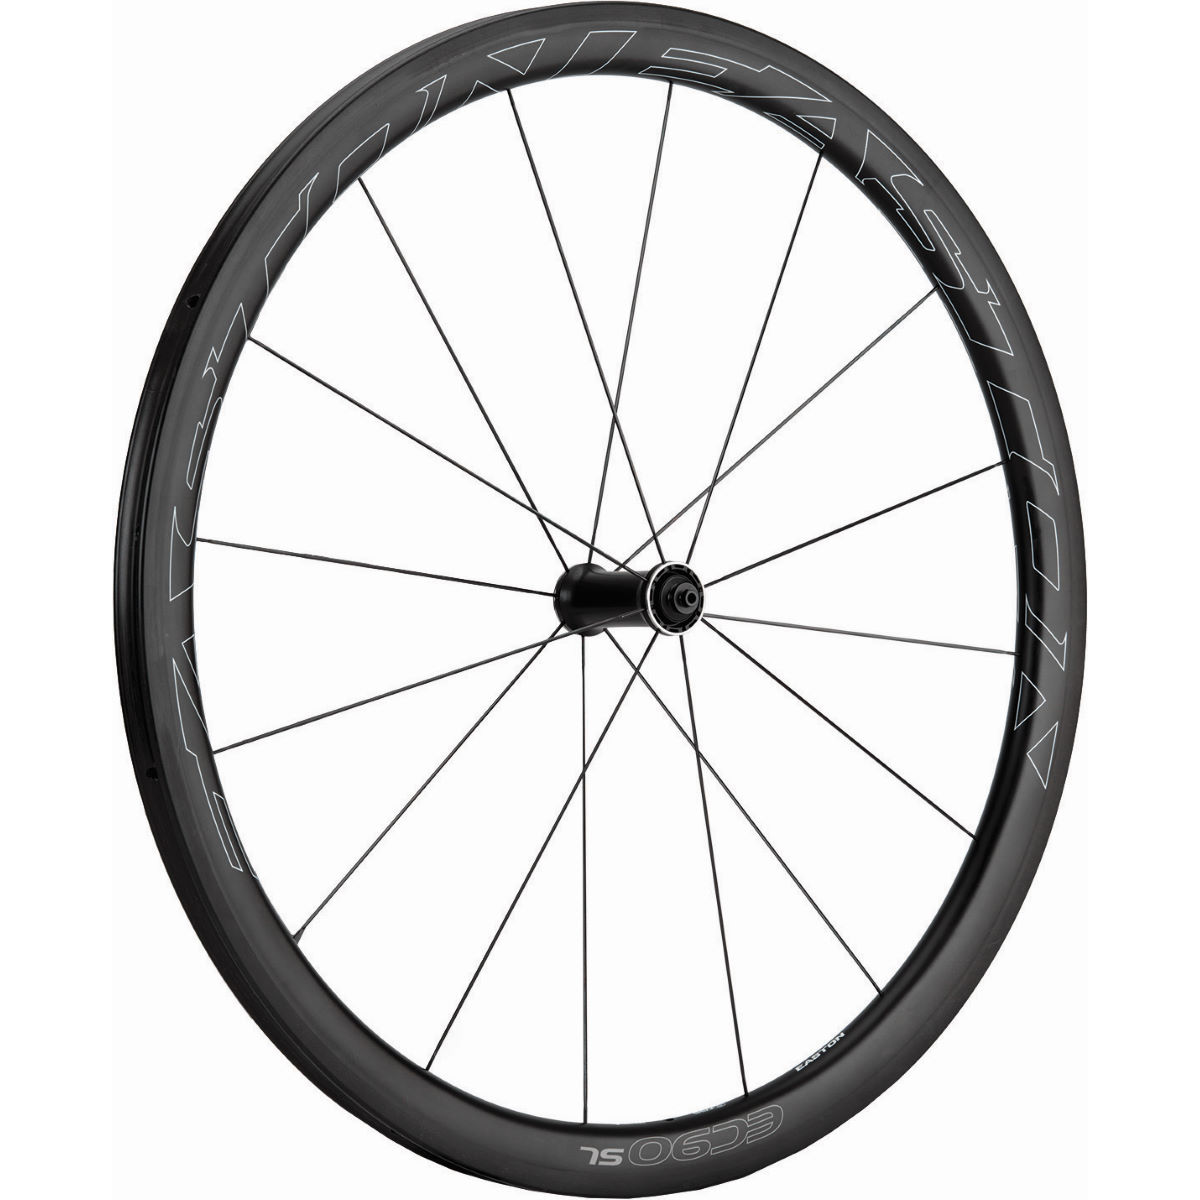 Roue avant Easton EC90 SL Carbon Tubeless - 700c Front Noir